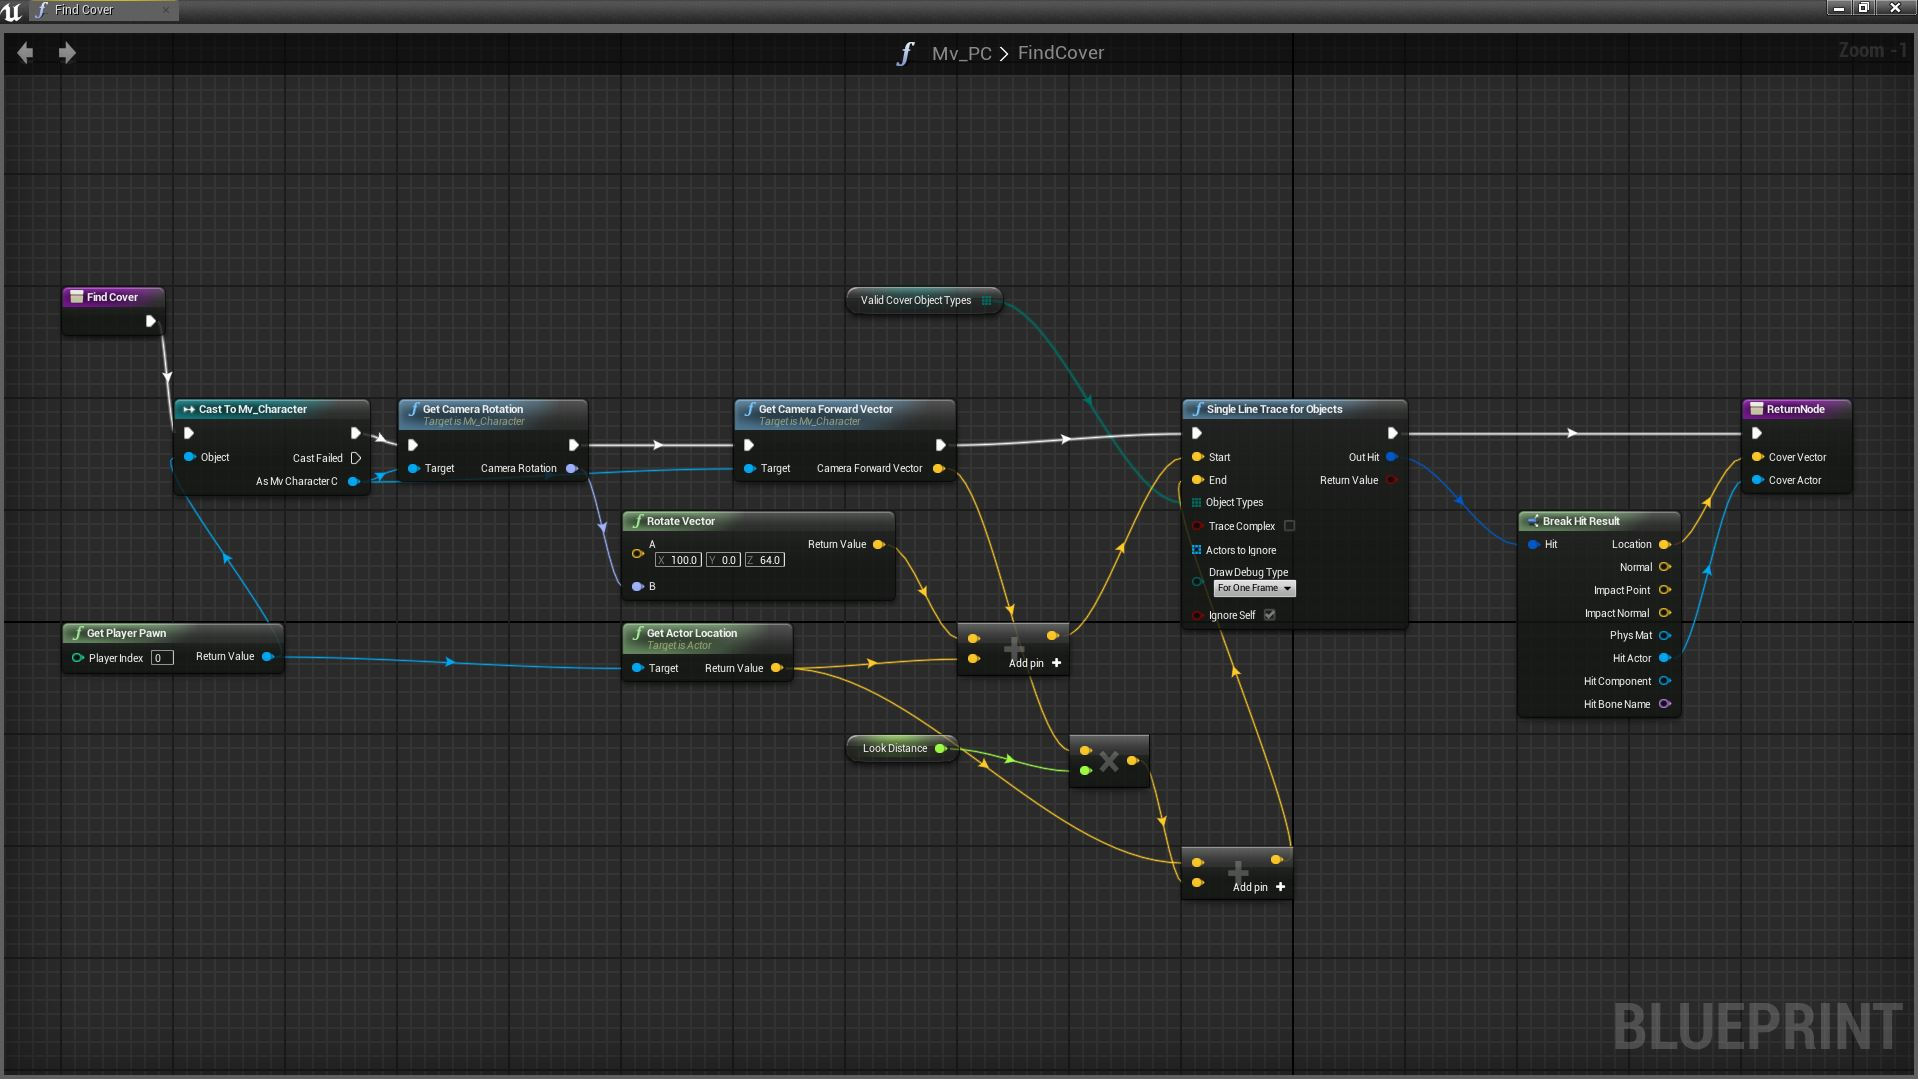 Using blueprints in unreal engine 4 finding stuff in front of us malvernweather Image collections